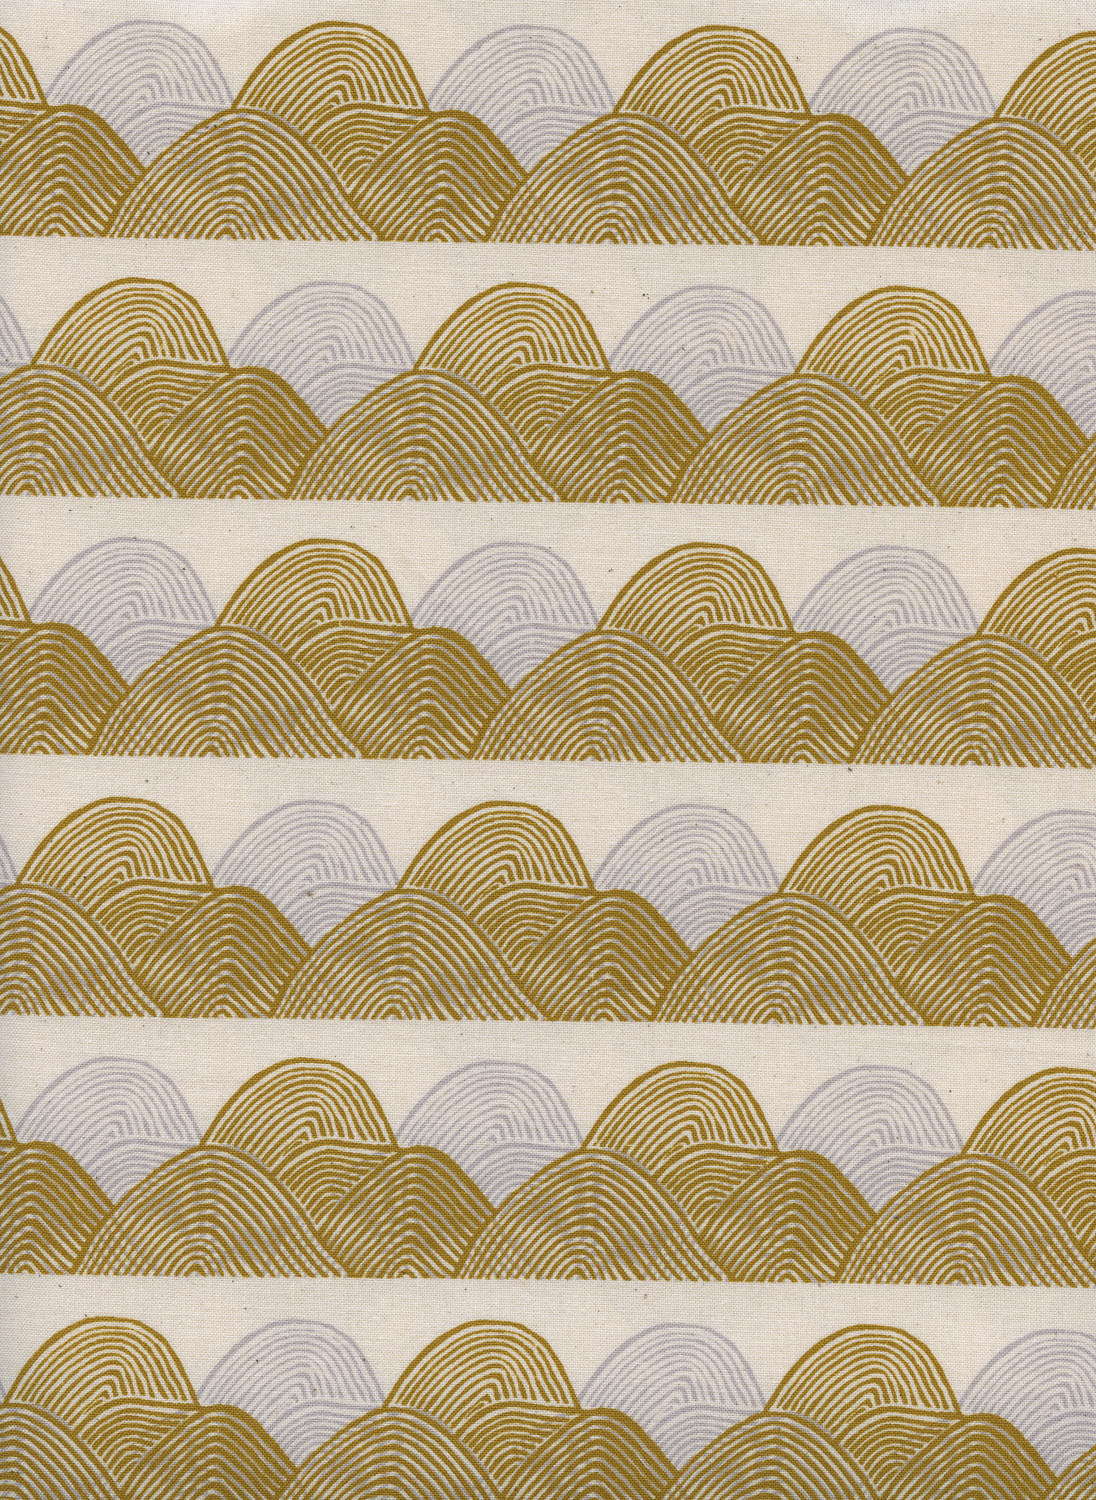 Headlands in Golden Hour by Jen Hewitt from the Imagined Landscapes collection for Cotton and Steel #J9013-002